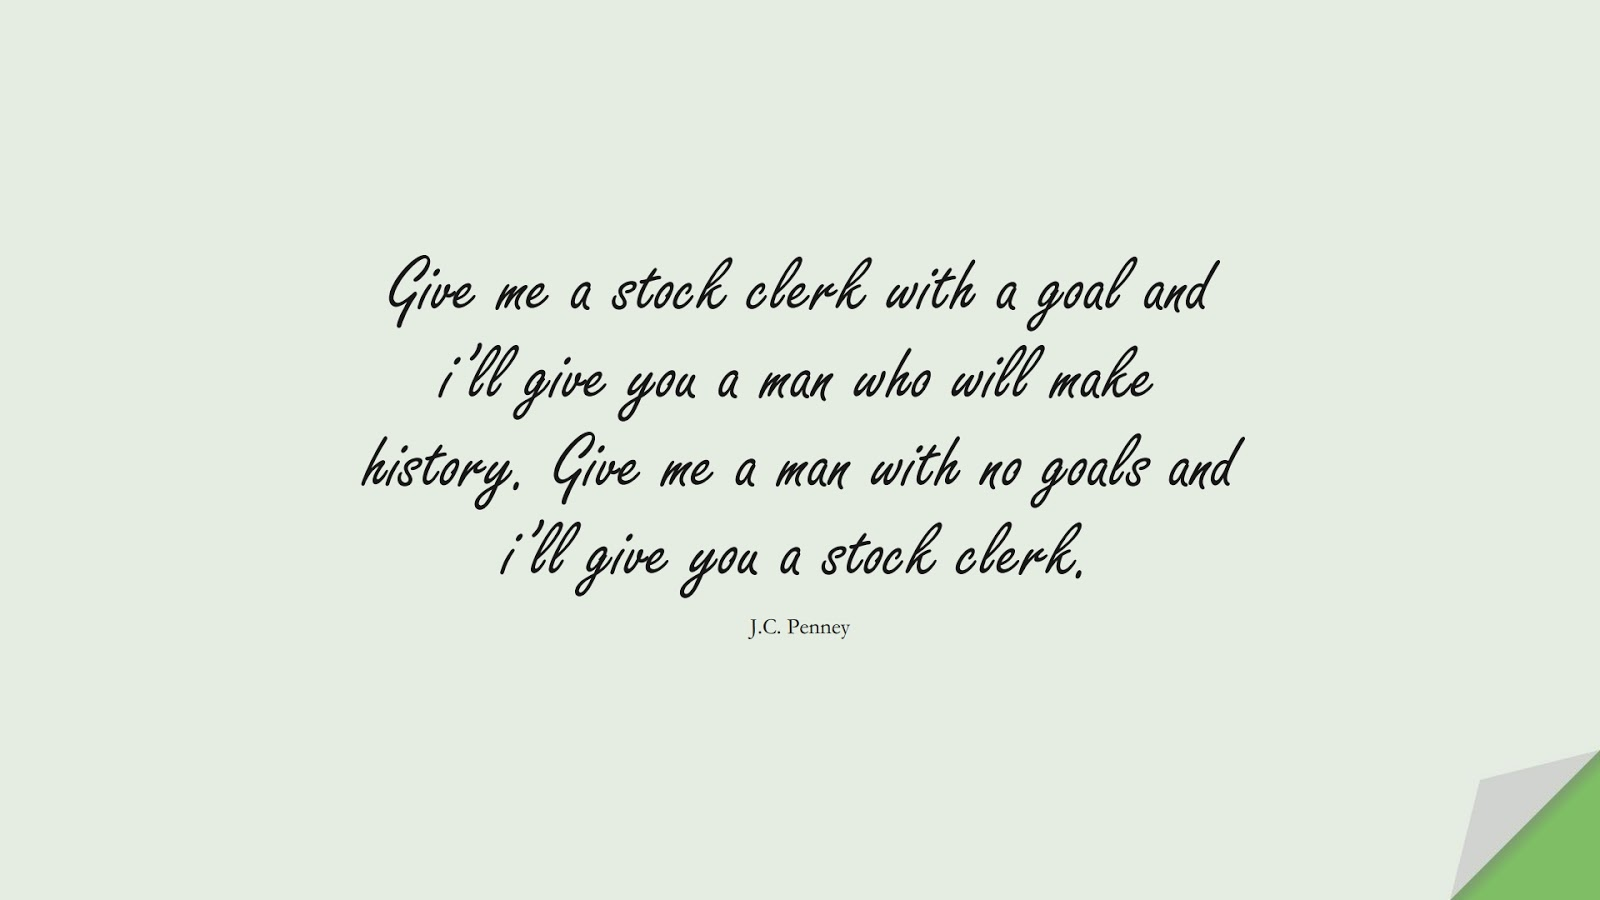 Give me a stock clerk with a goal and i'll give you a man who will make history. Give me a man with no goals and i'll give you a stock clerk. (J.C. Penney);  #SuccessQuotes